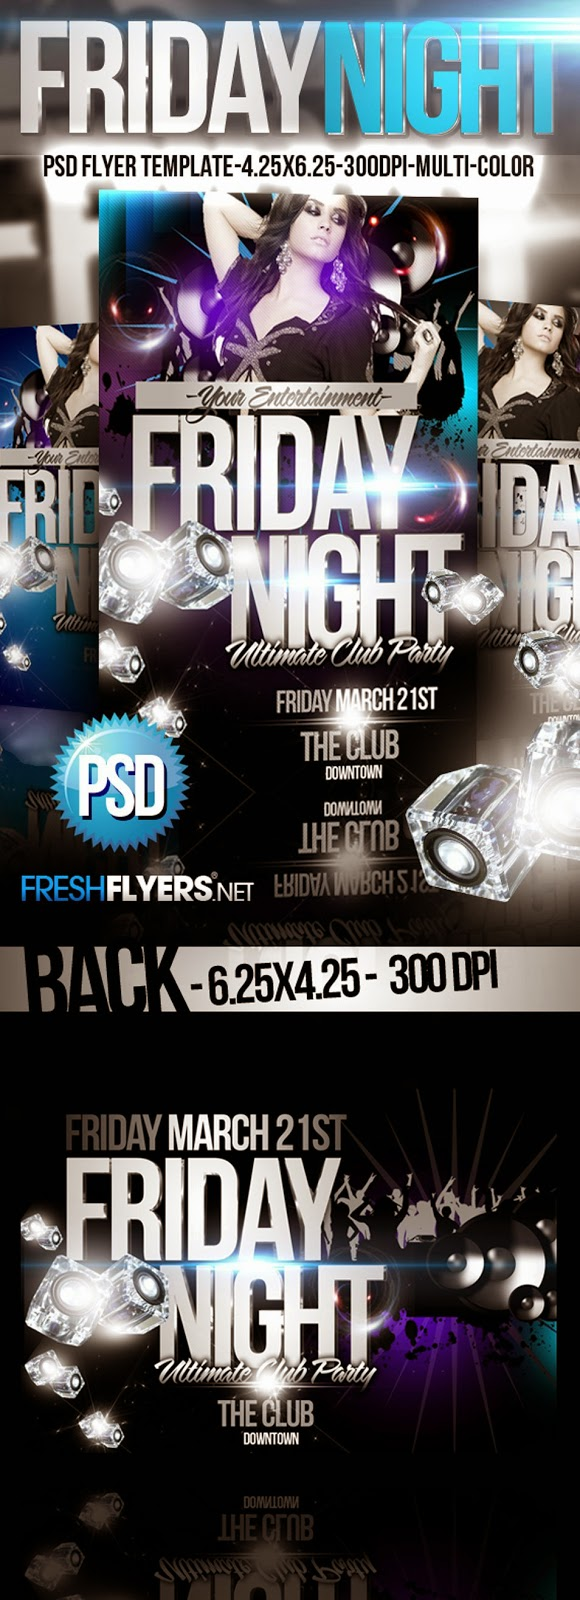 Free PSD Night Flyer Template